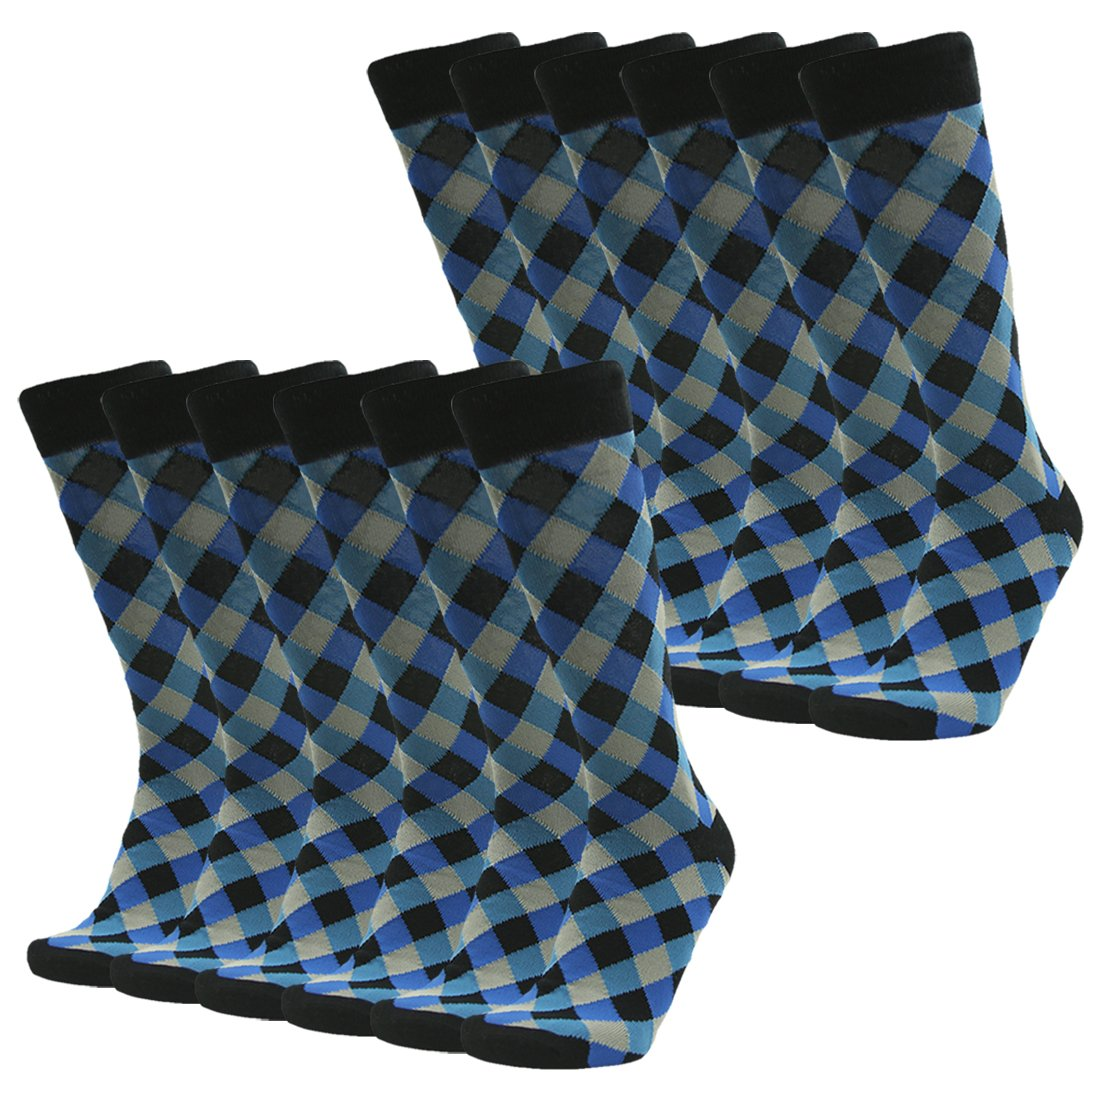 Groomsmen Wedding Socks, SUTTOS Men's Youth Crazy Fun Suit Socks Blue Black Diamond Sharp Fashion Design Big & Tall Stretchy Boot Sock,12 Pairs of Luxury Clothes Apparel Business Gifts Husband Father